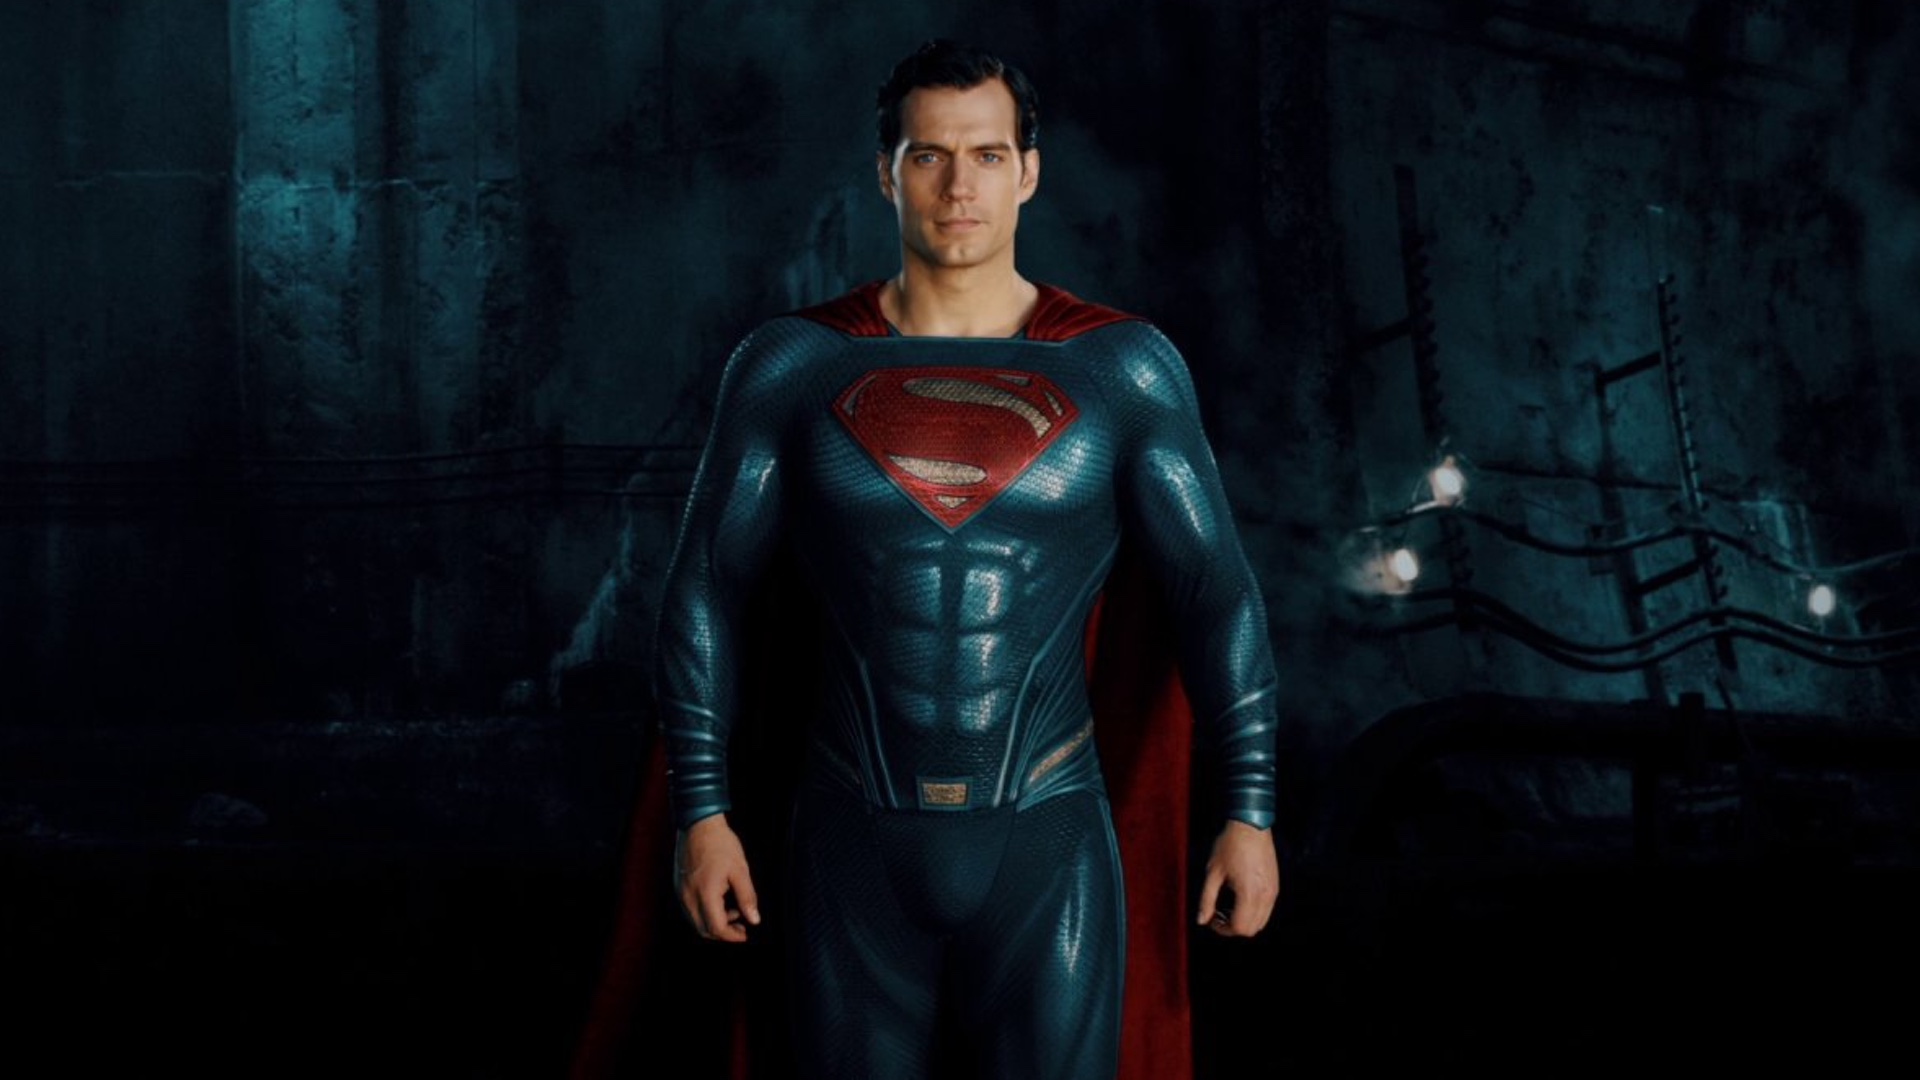 cool-behind-the-scenes-justice-league-video-shows-henry-cavill-flying-to-john-williams-superman-score-social.jpg